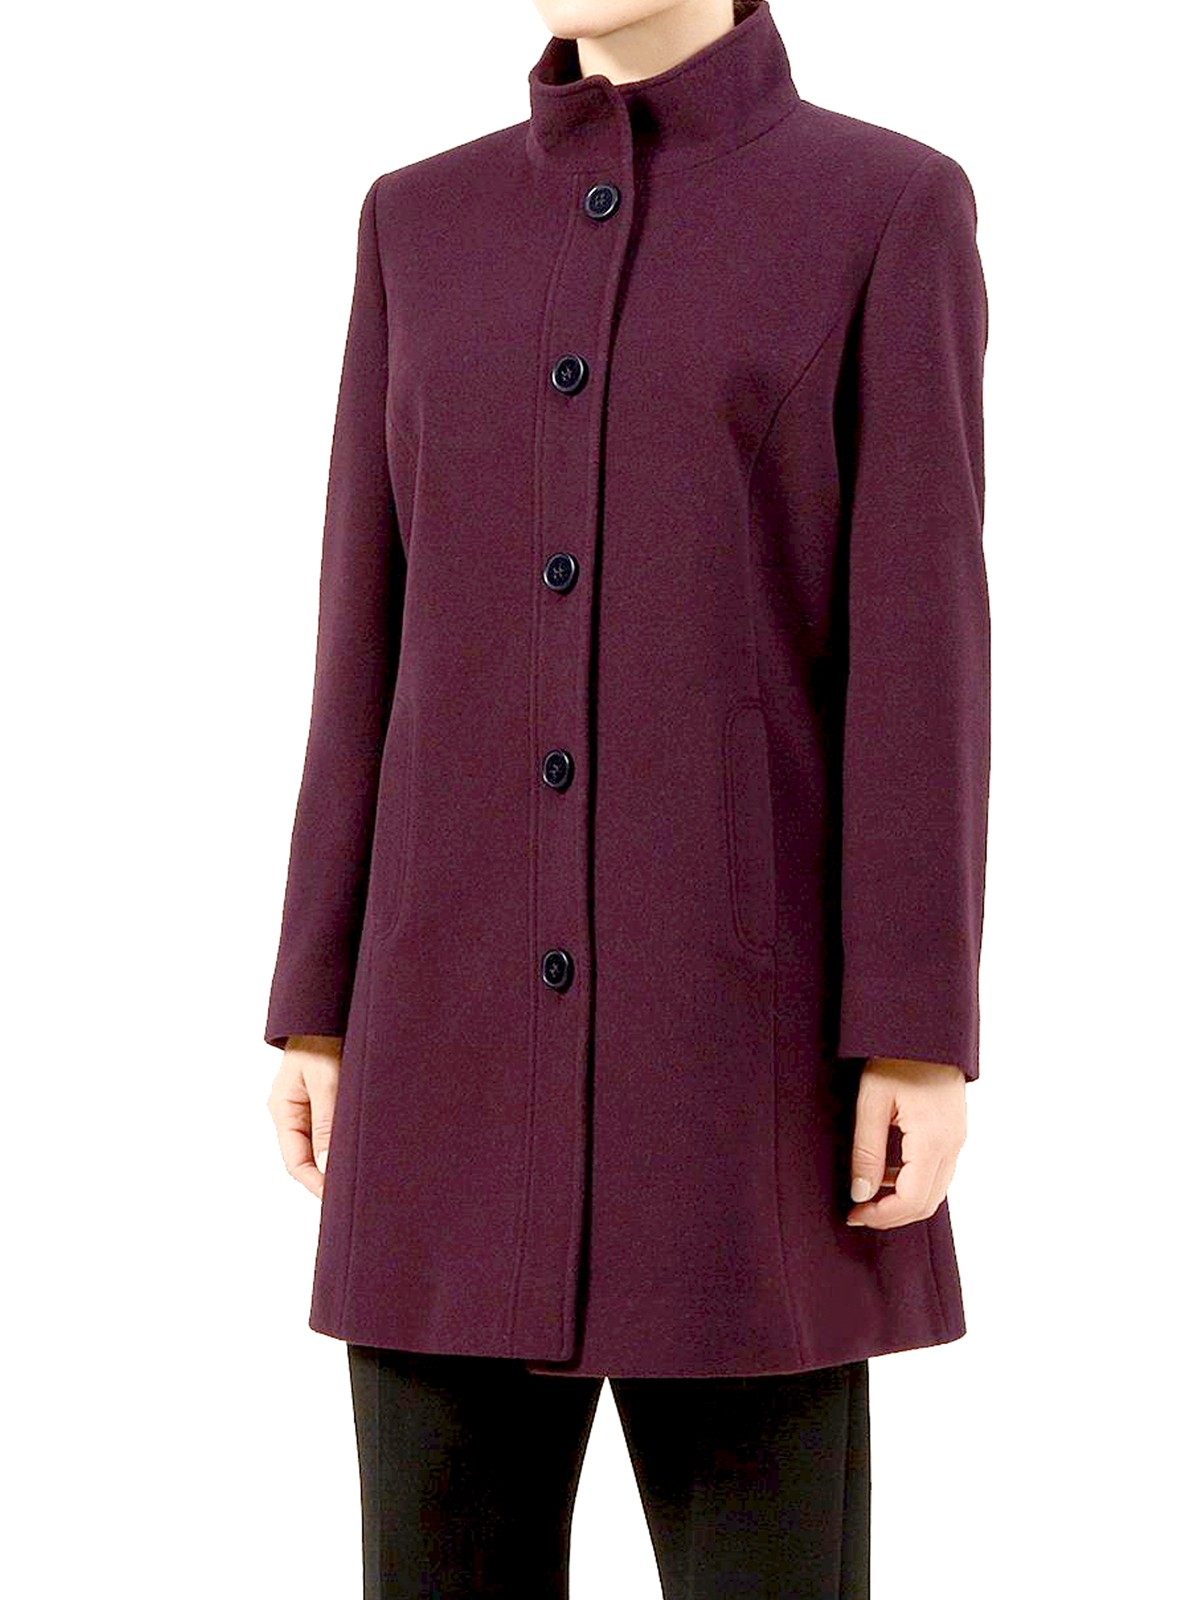 Find great deals on eBay for purple wool jacket. Shop with confidence.